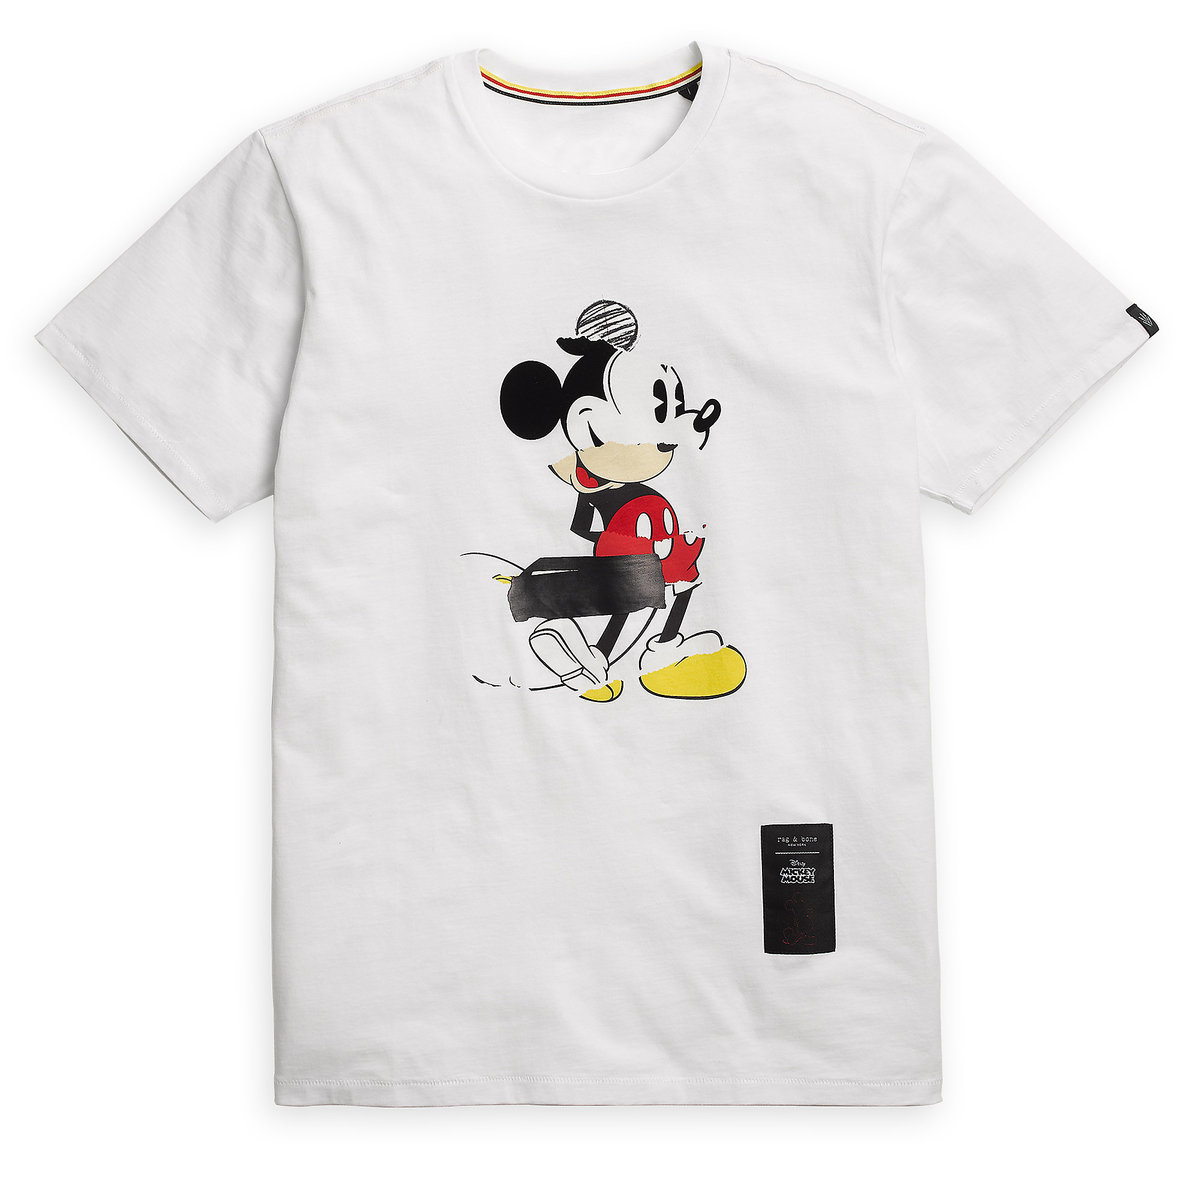 beae1fda74 Product Image of Mickey Mouse Collage T-Shirt for Adults by rag & bone #